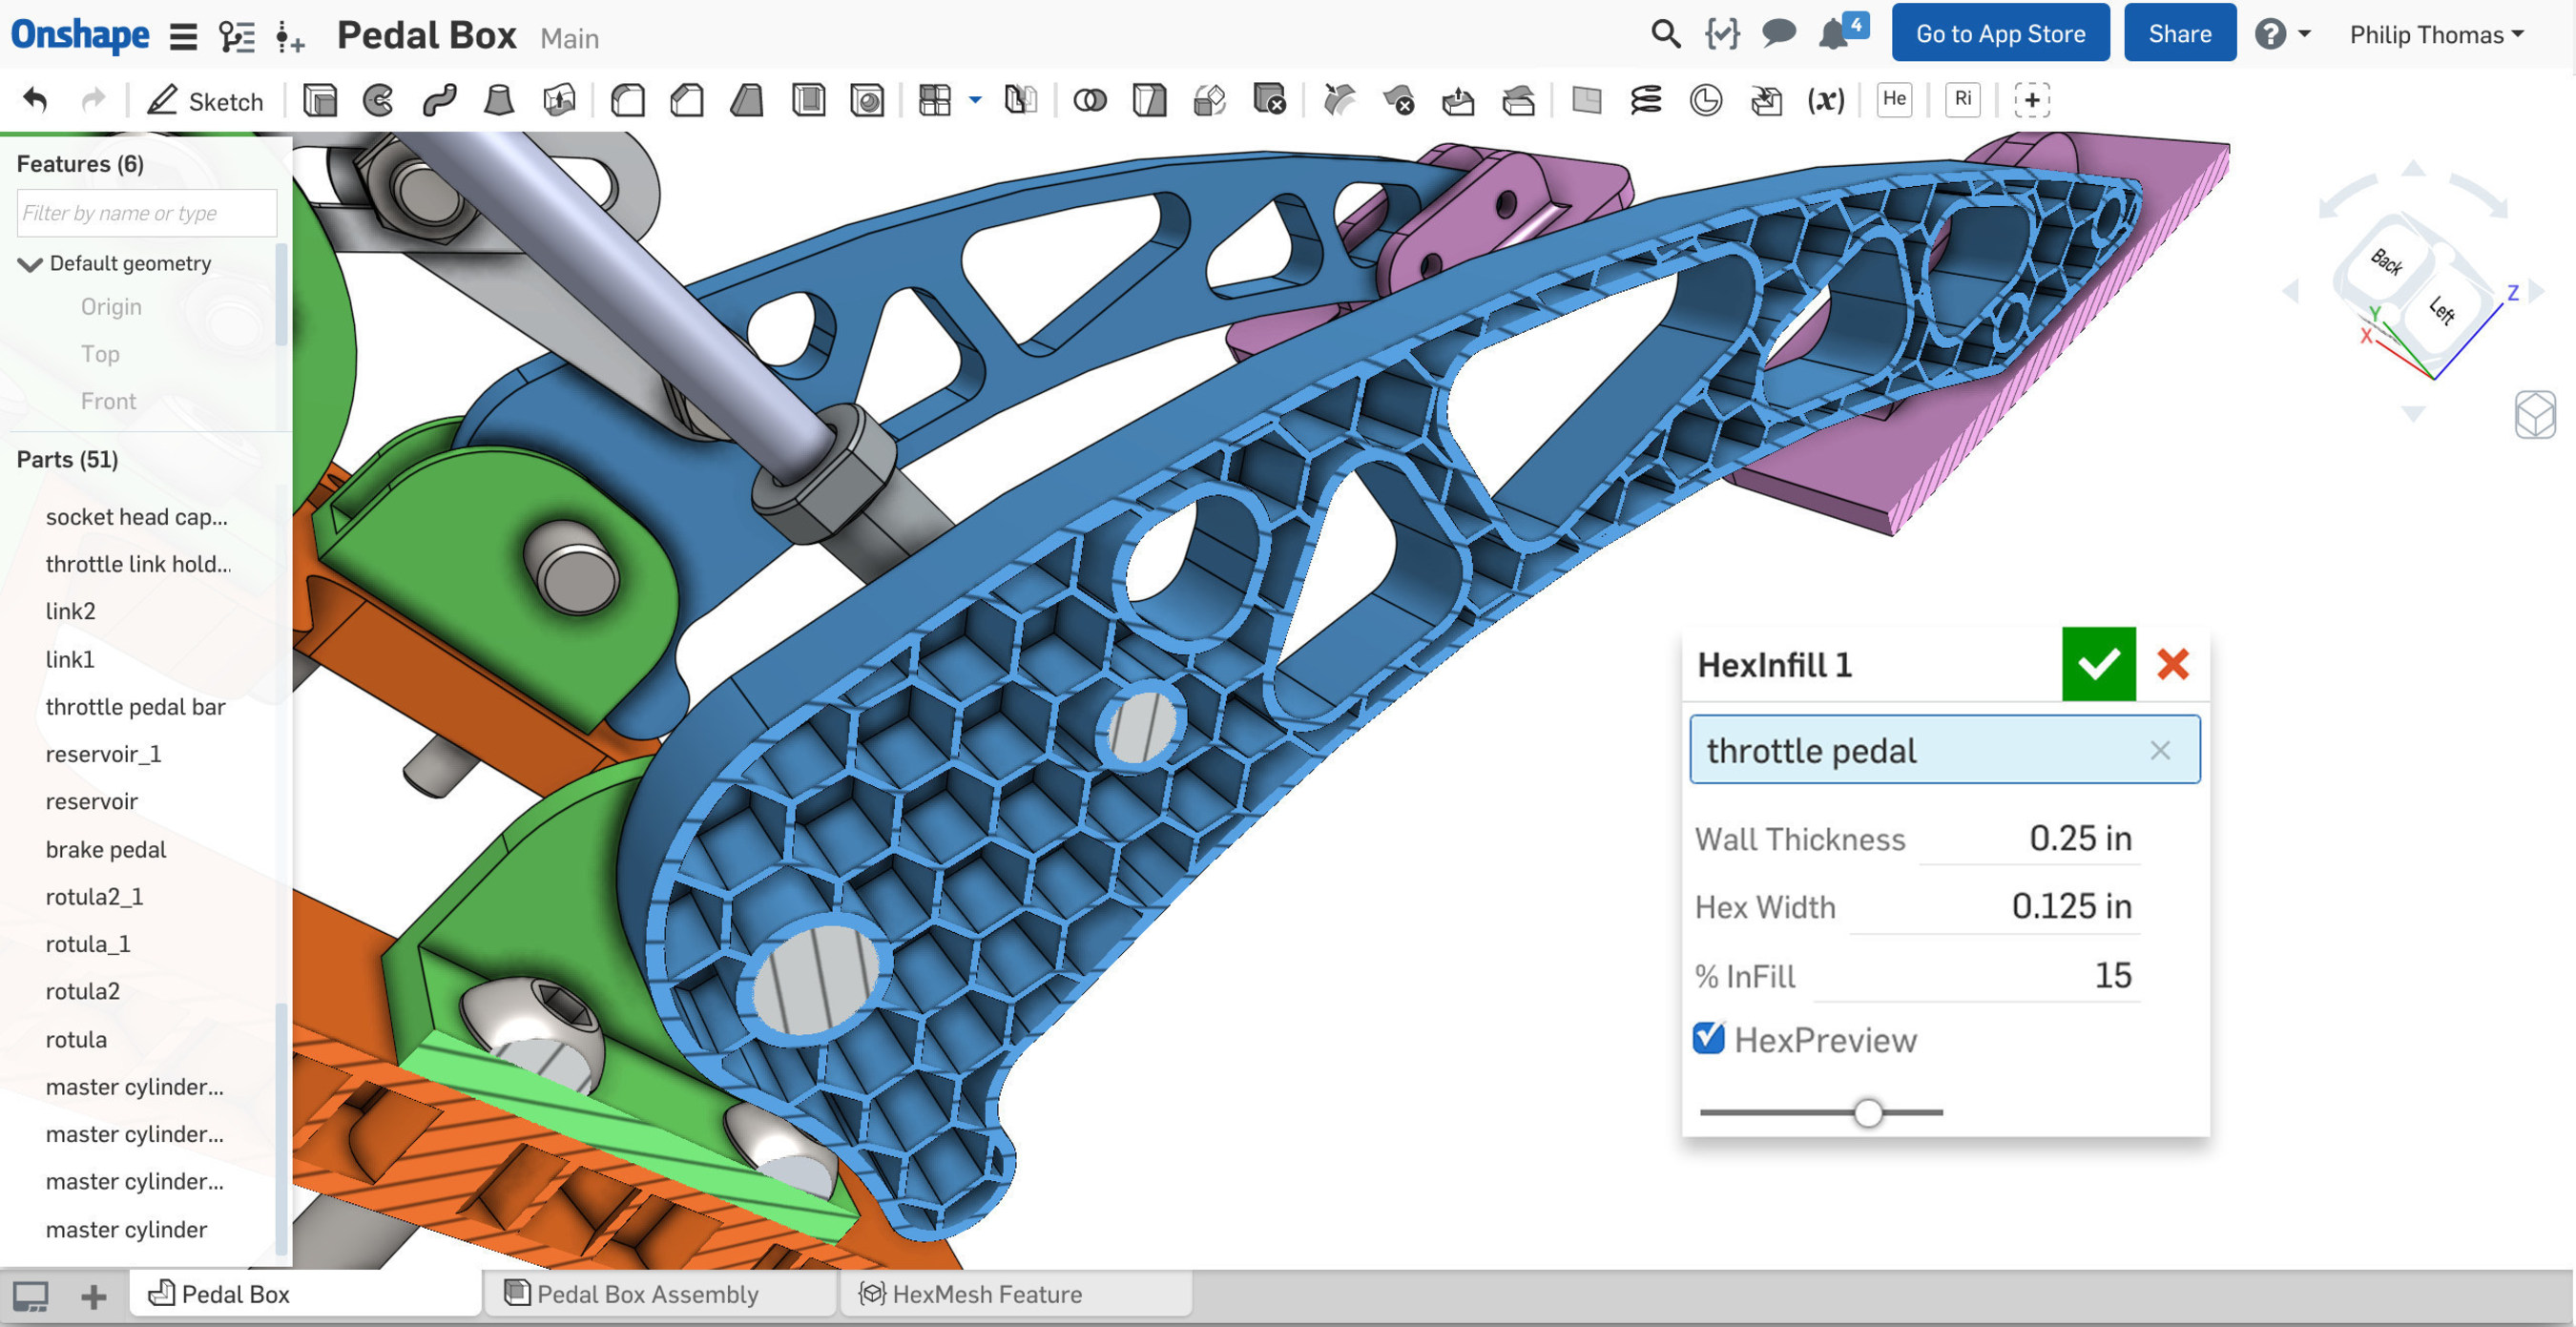 Onshape's FeatureScript Lets 3D CAD Users Design Faster With Custom Parametric Features